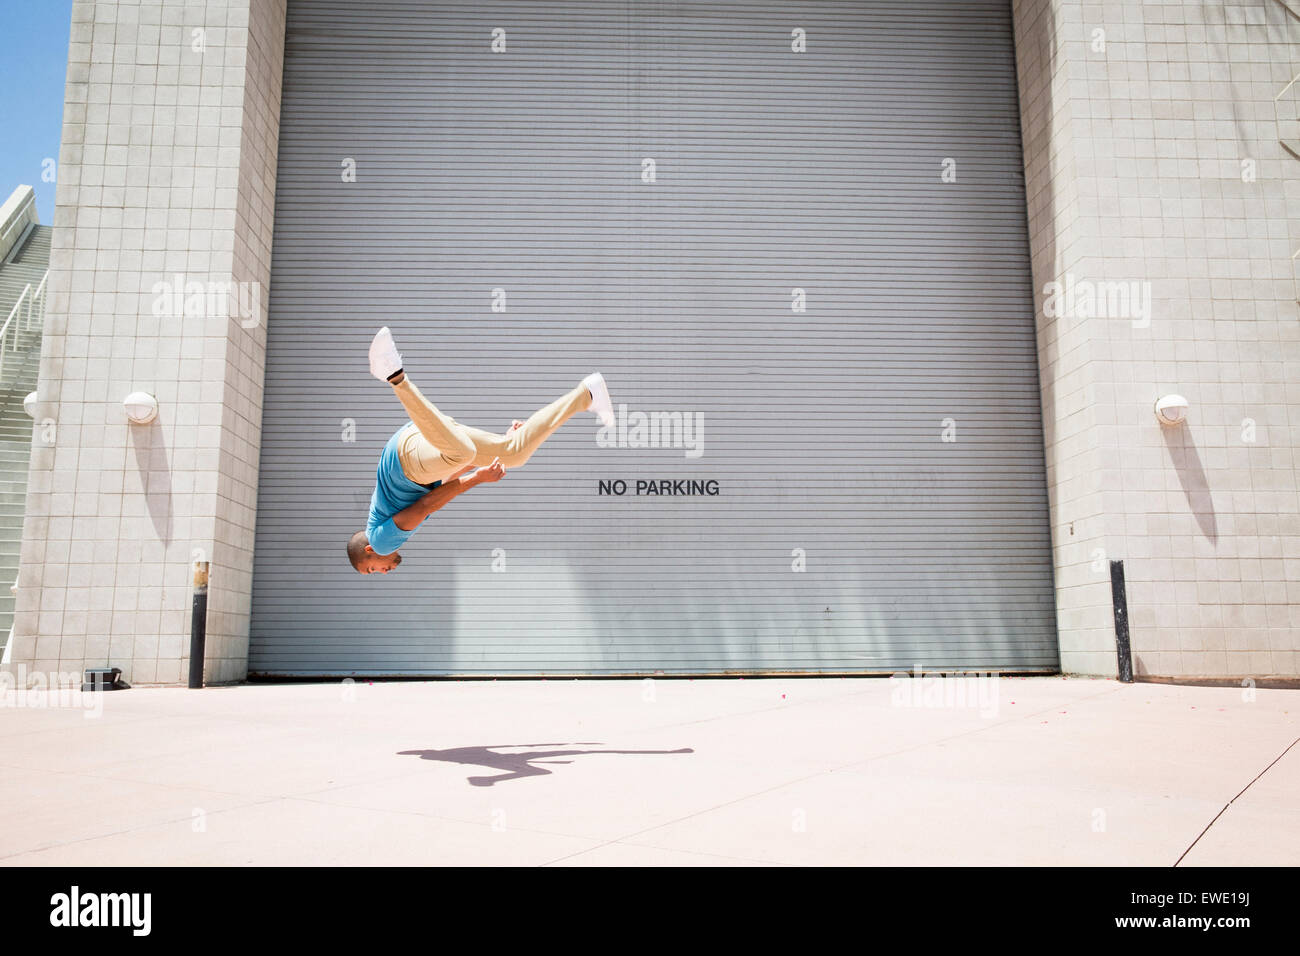 Jeune homme somersaulting sur parcours rue parkour free running Photo Stock